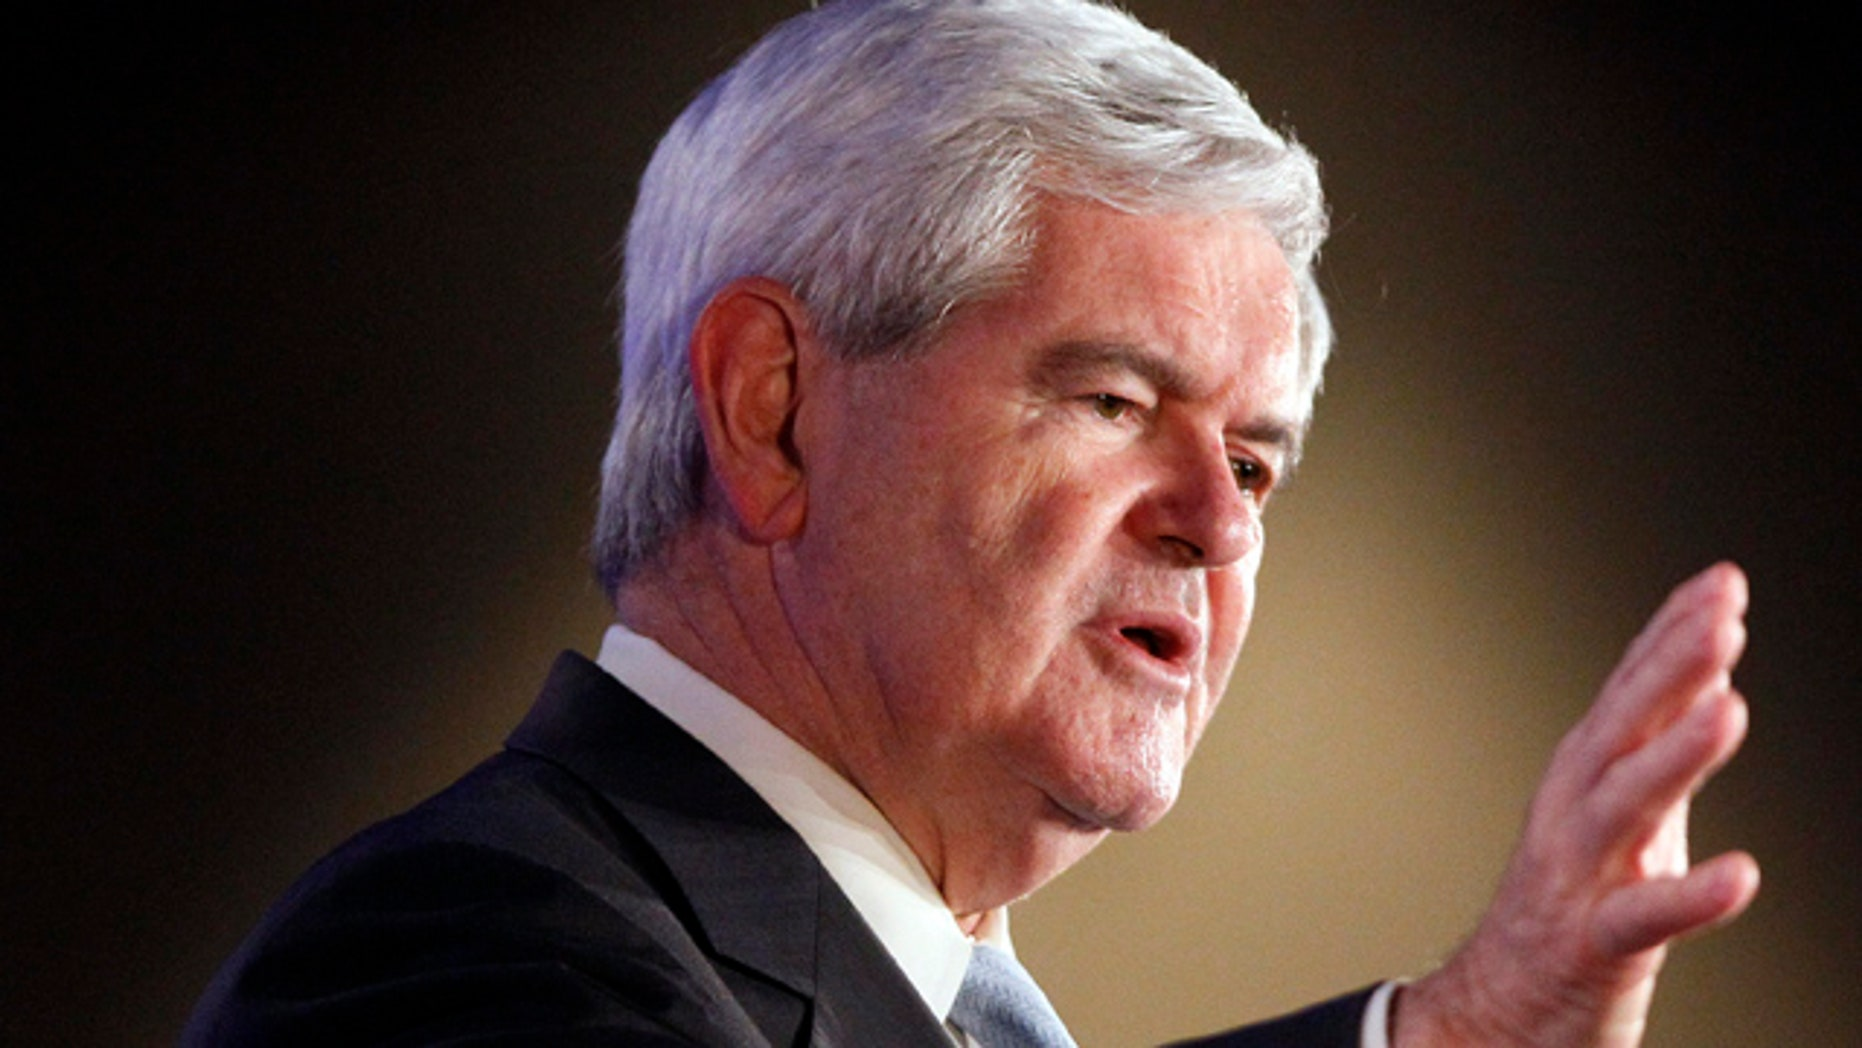 June 16: Newt Gingrich speaks at the Republican Leadership Conference in New Orleans. News reports of another pricey Tiffany's credit account may hurt his candidacy.